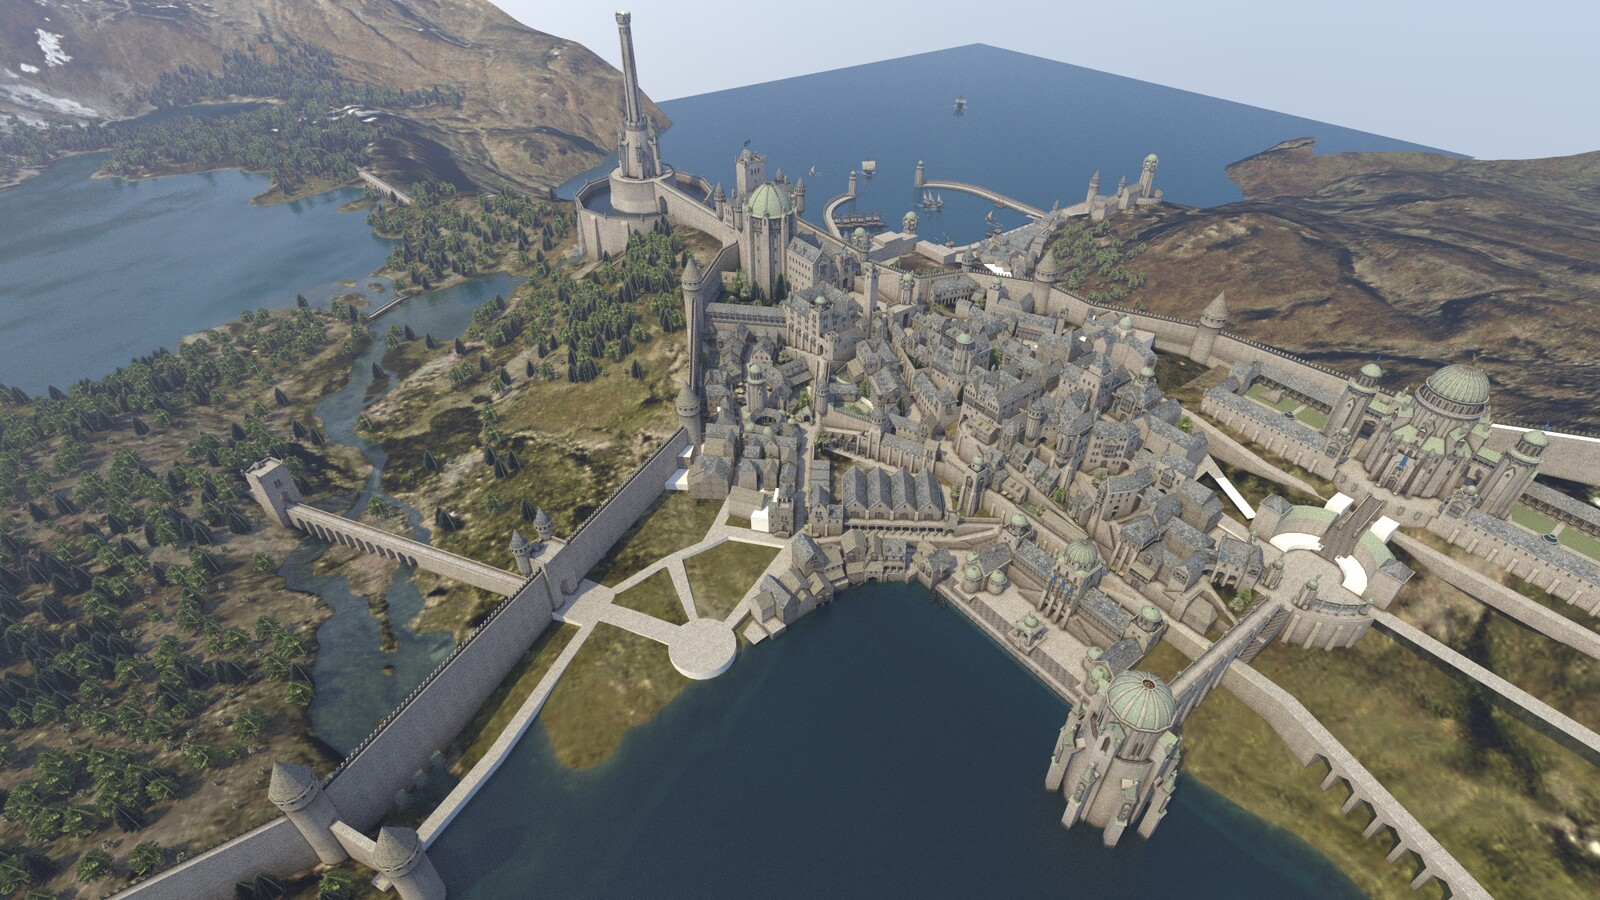 General view of the (unfinished) city with the port in the background.